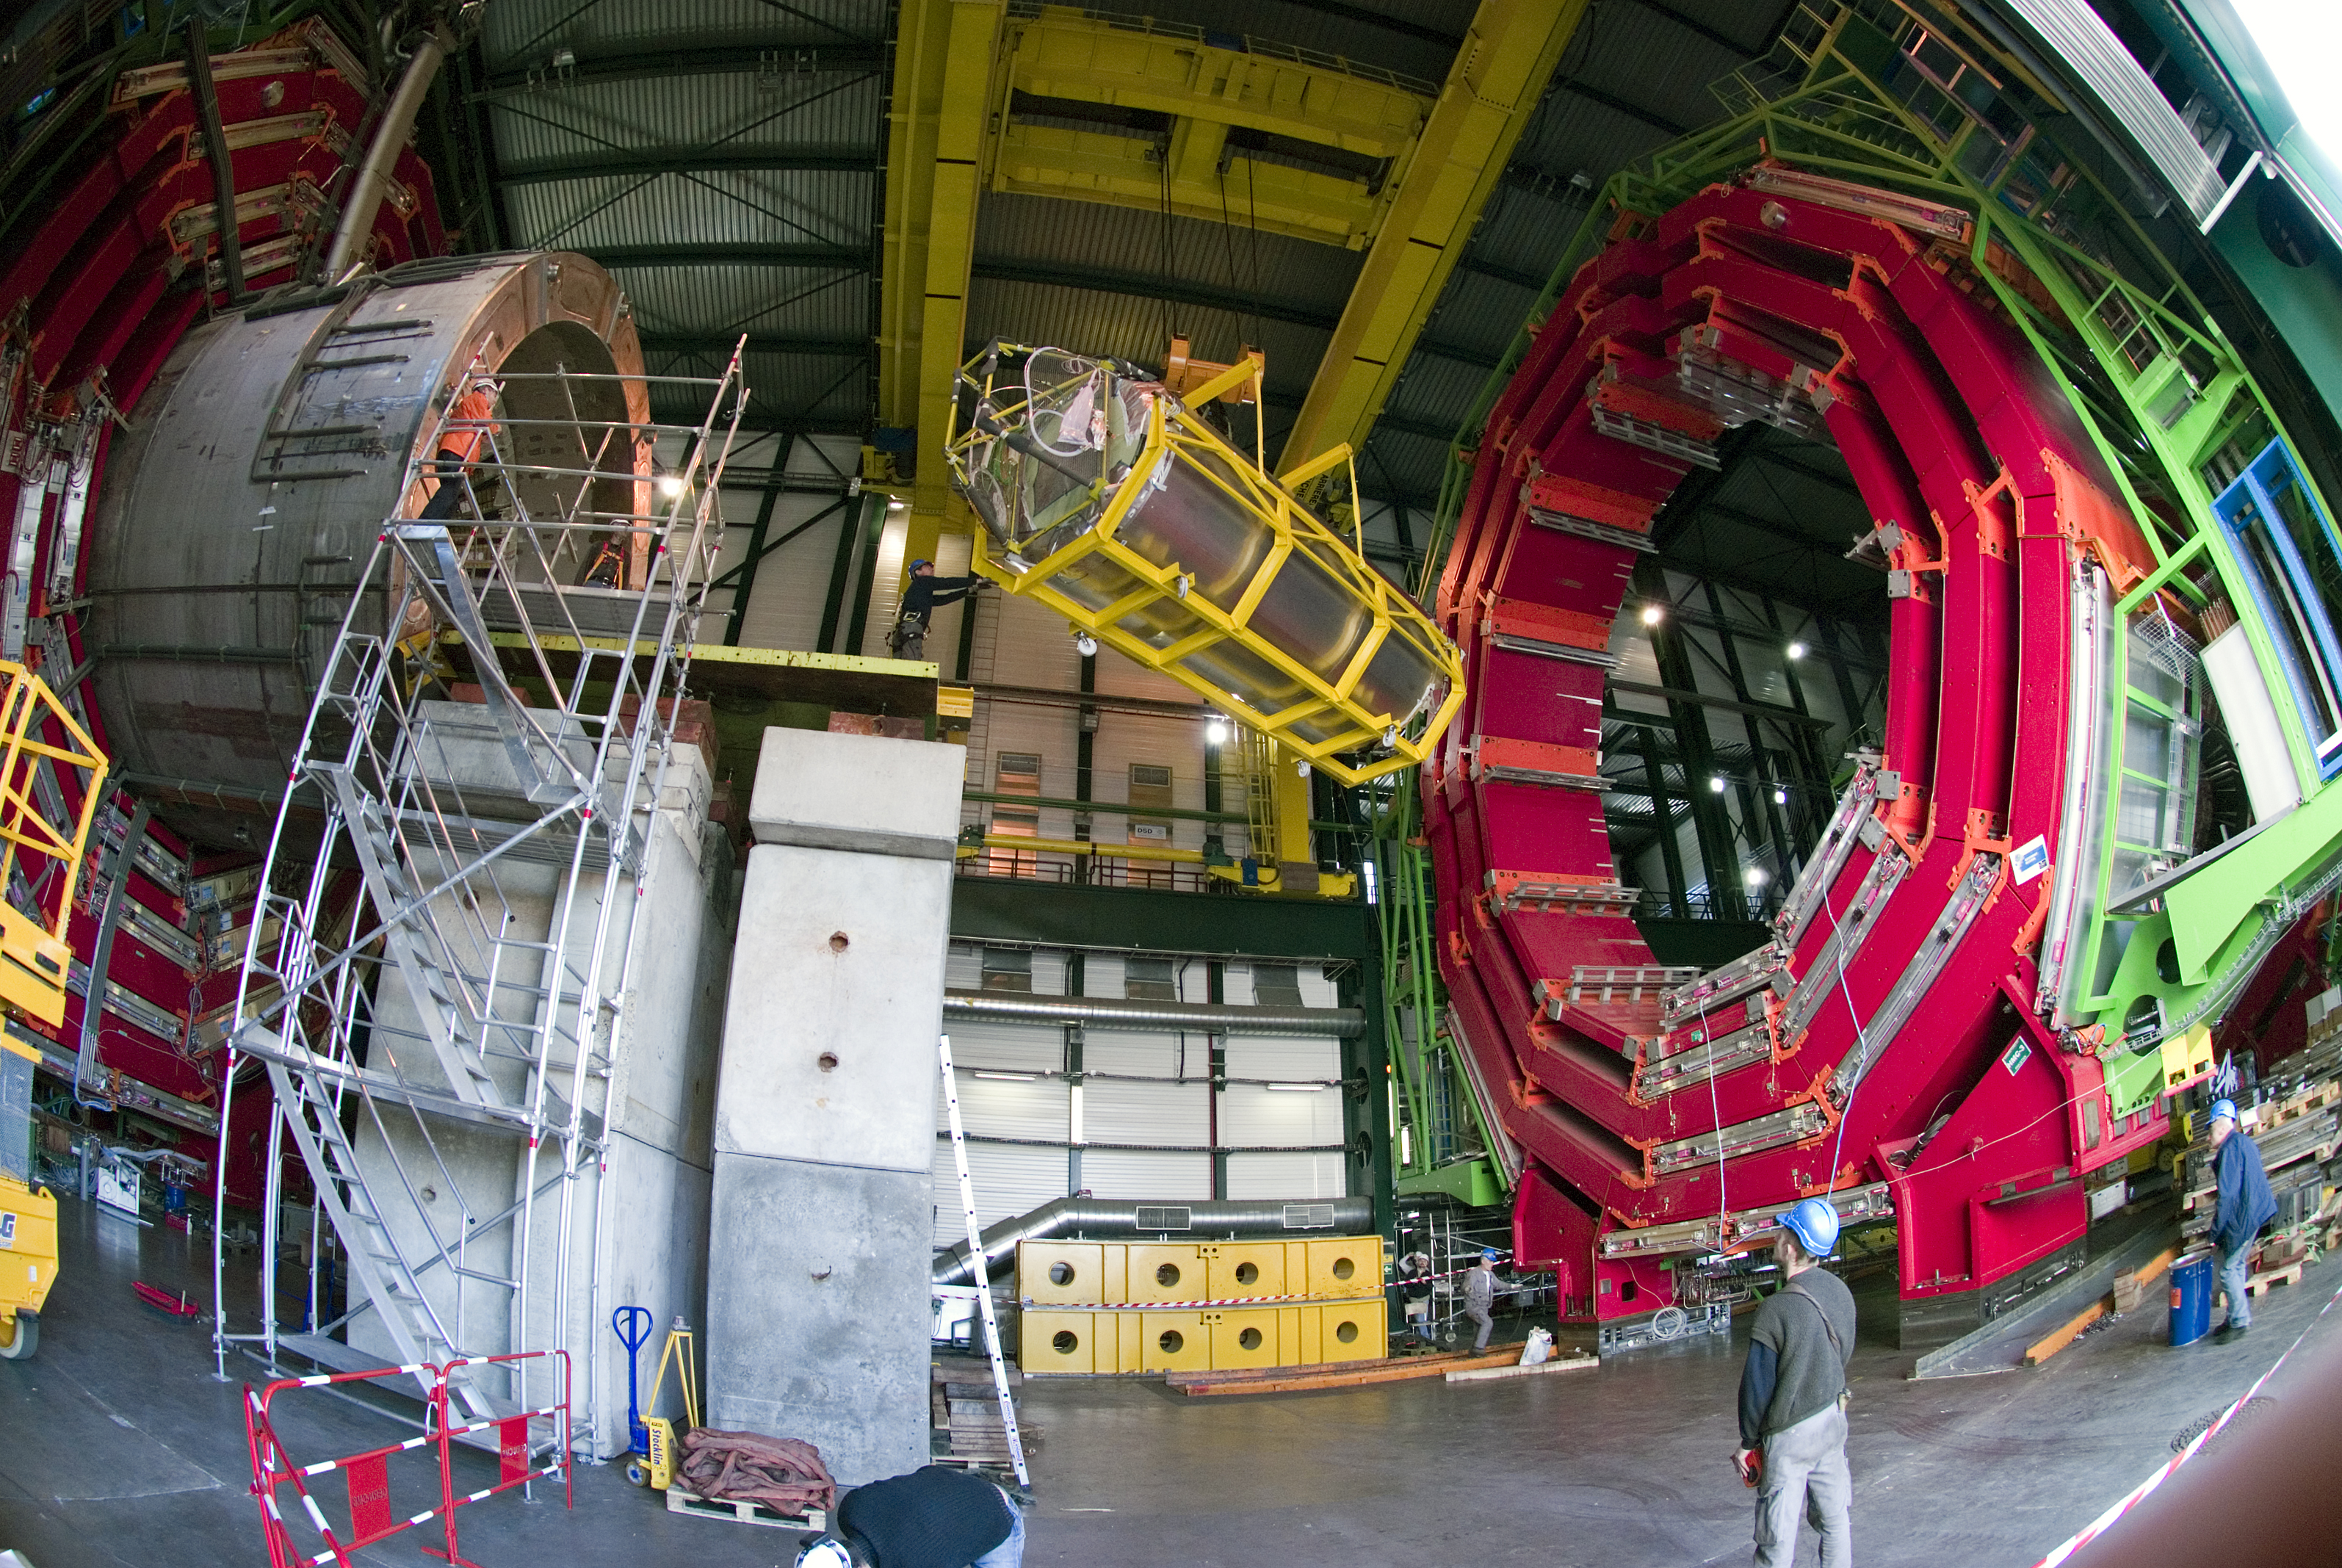 The Compact Muon Solenoid (CMS) detector at CERN